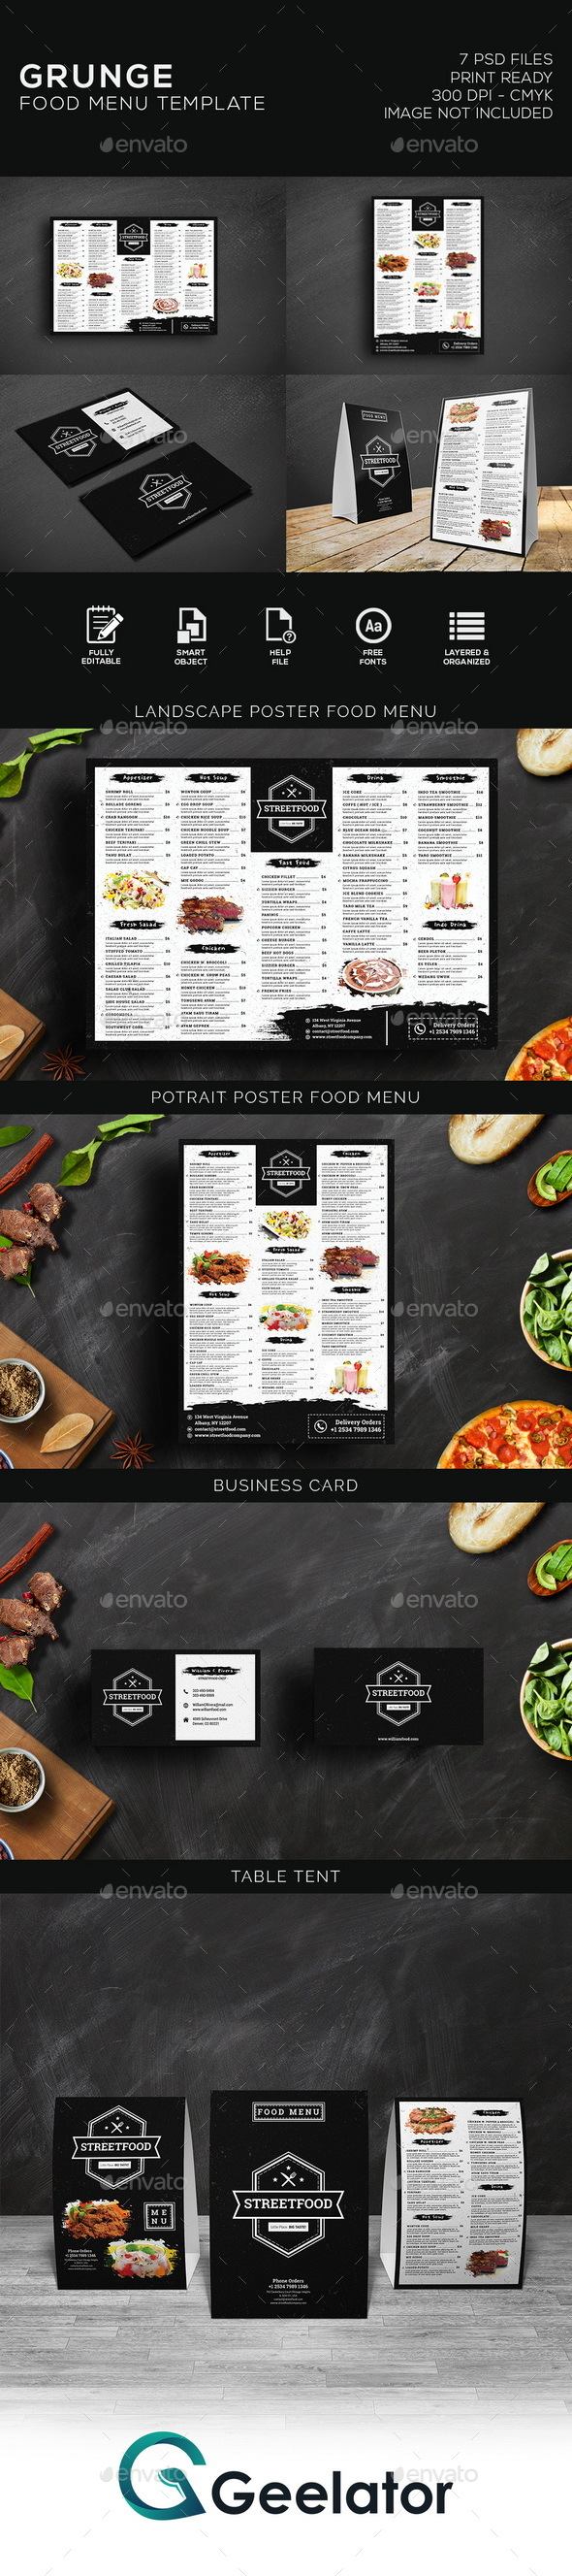 Grunge Food Menu - Food Menus Print Templates